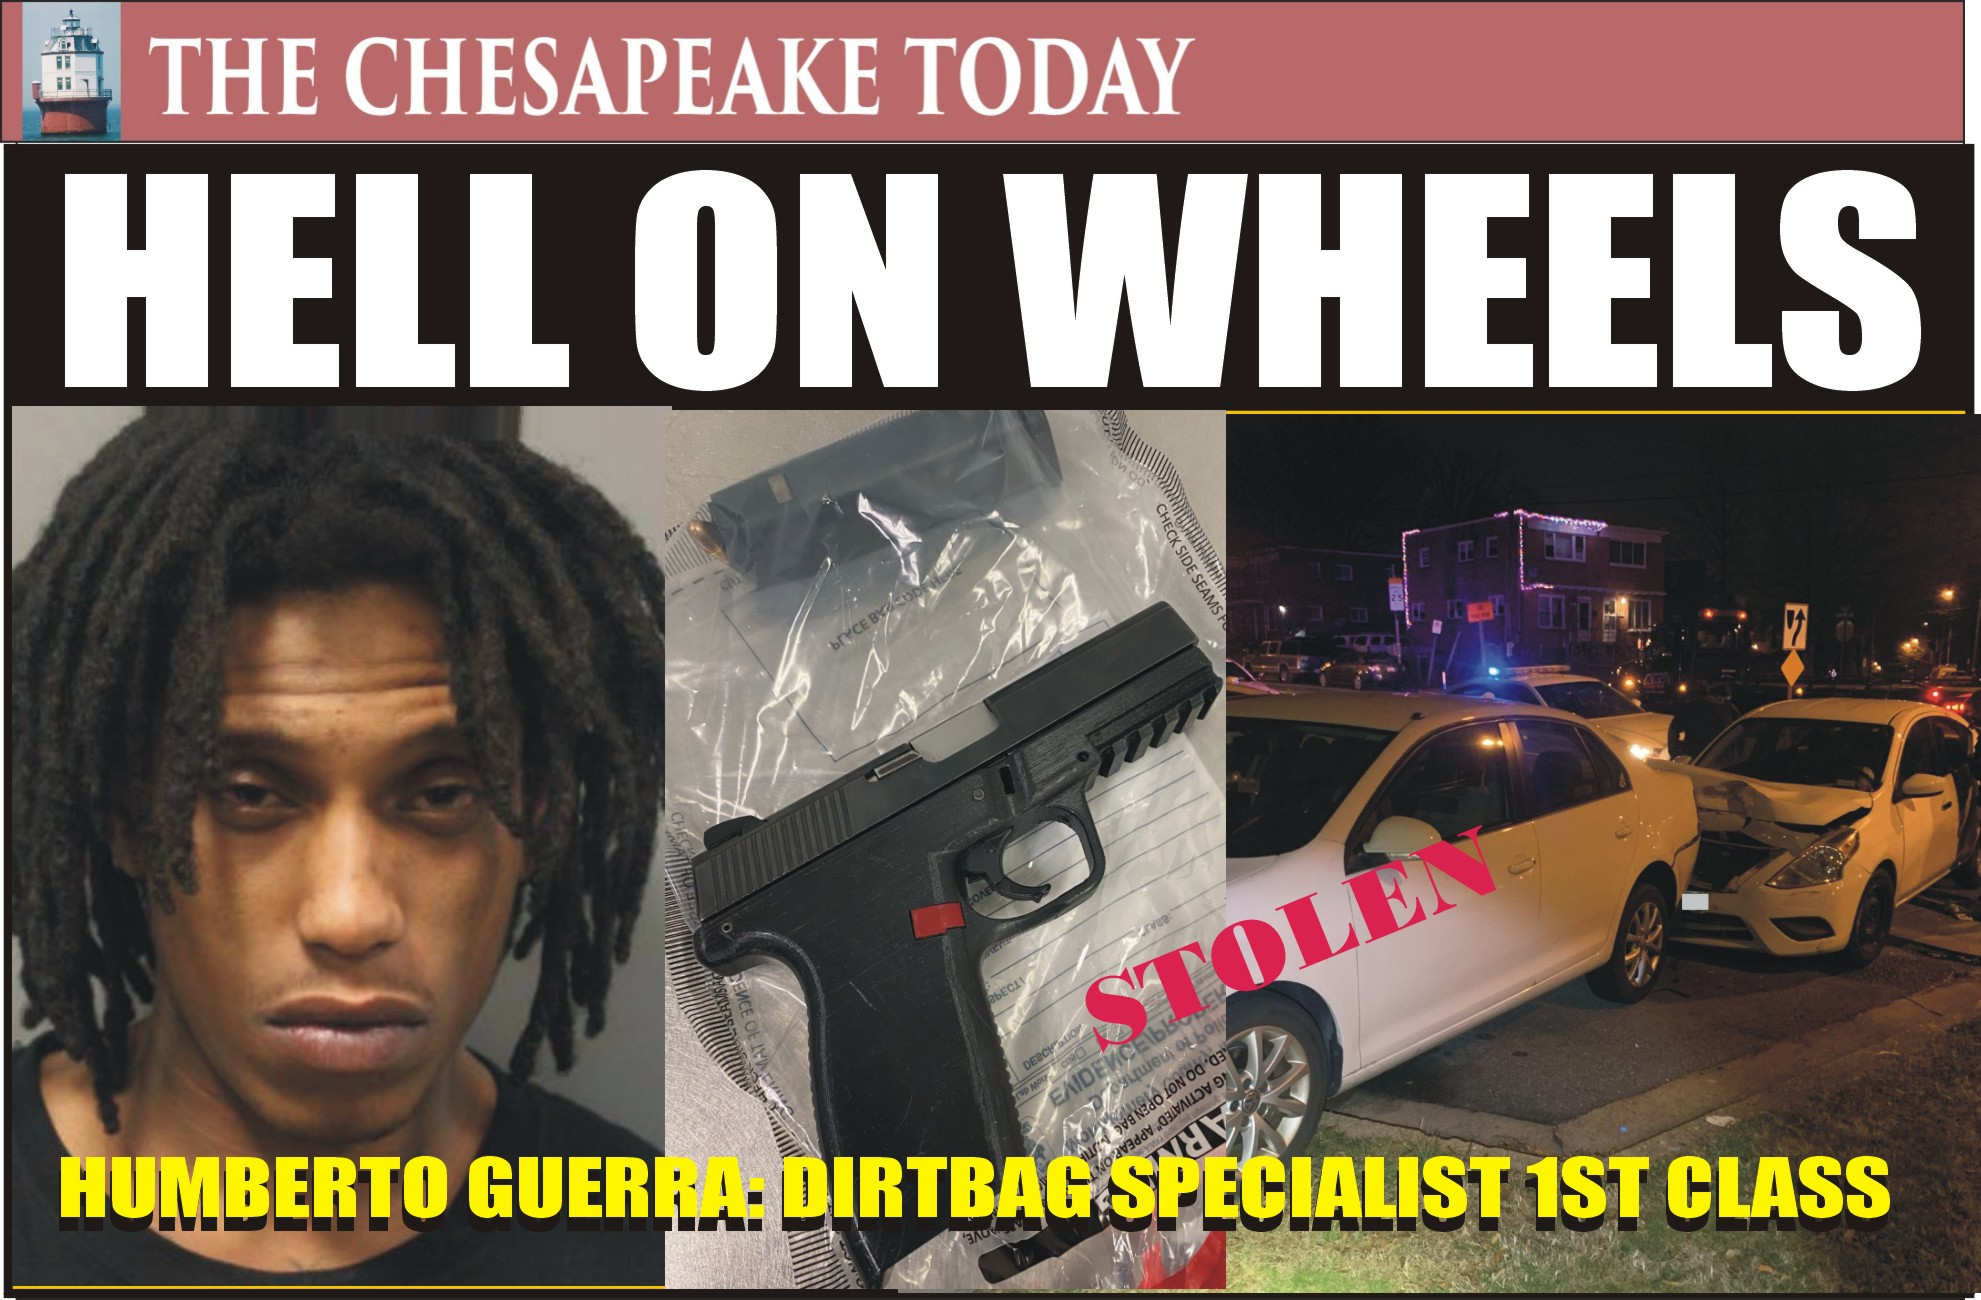 DWI HIT PARADE: Holiday Alcohol Task Force Officers Arrest Humberto Guerra for Hit-and-Run and DUI; Packing Heat